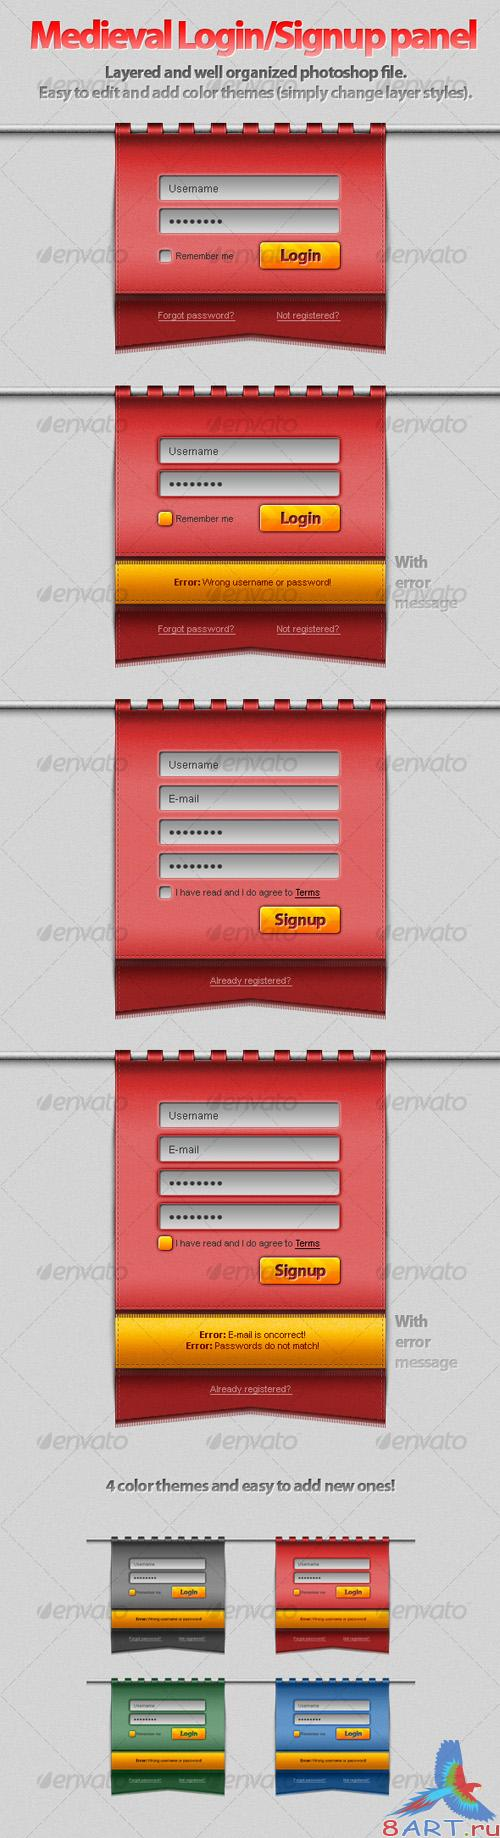 GraphicRiver Hanging Medieval Login-Signup Panel